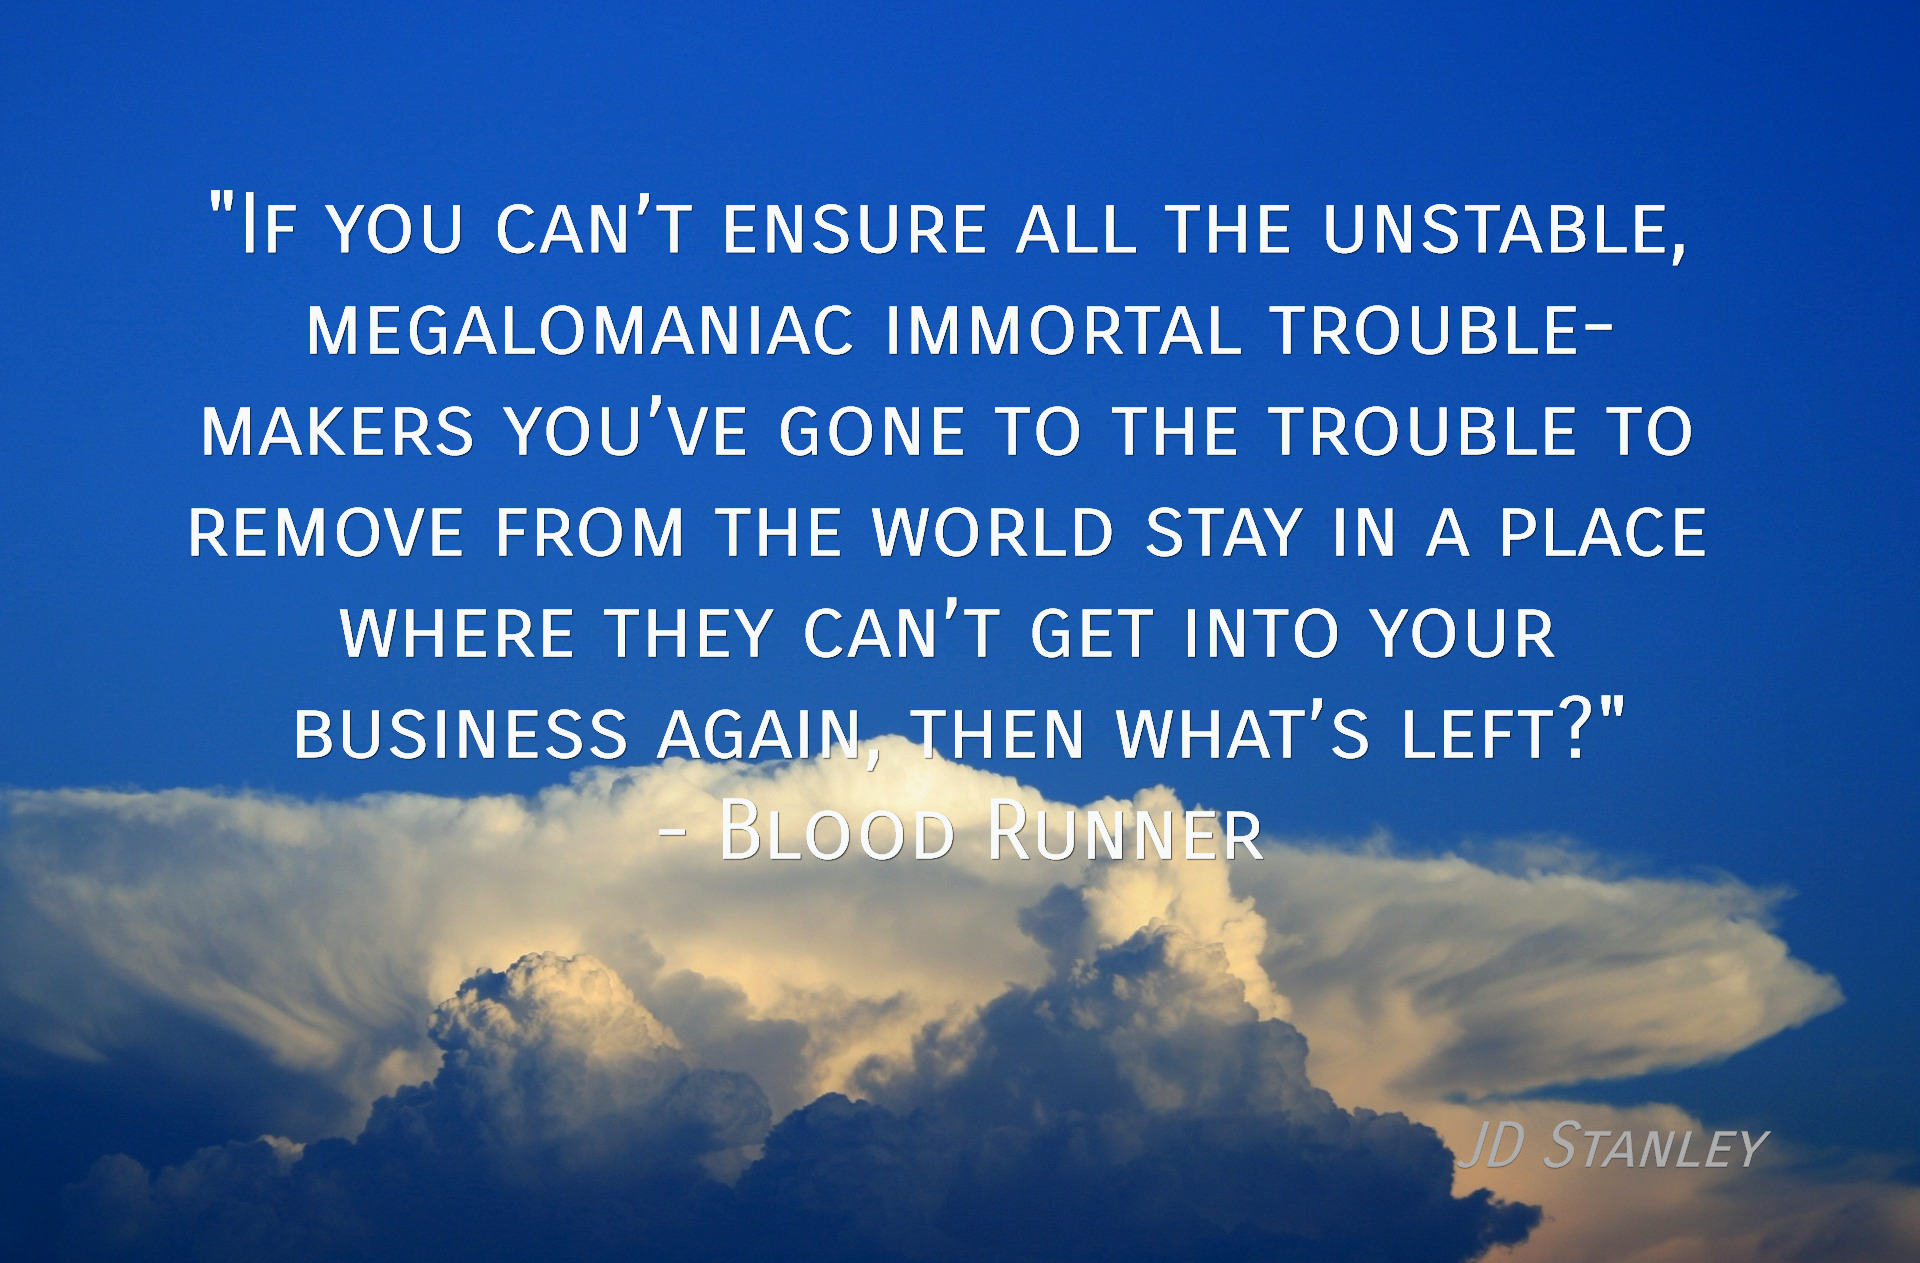 if you cant ensure all the unstable megalomaniac immortal trouble makers youve...